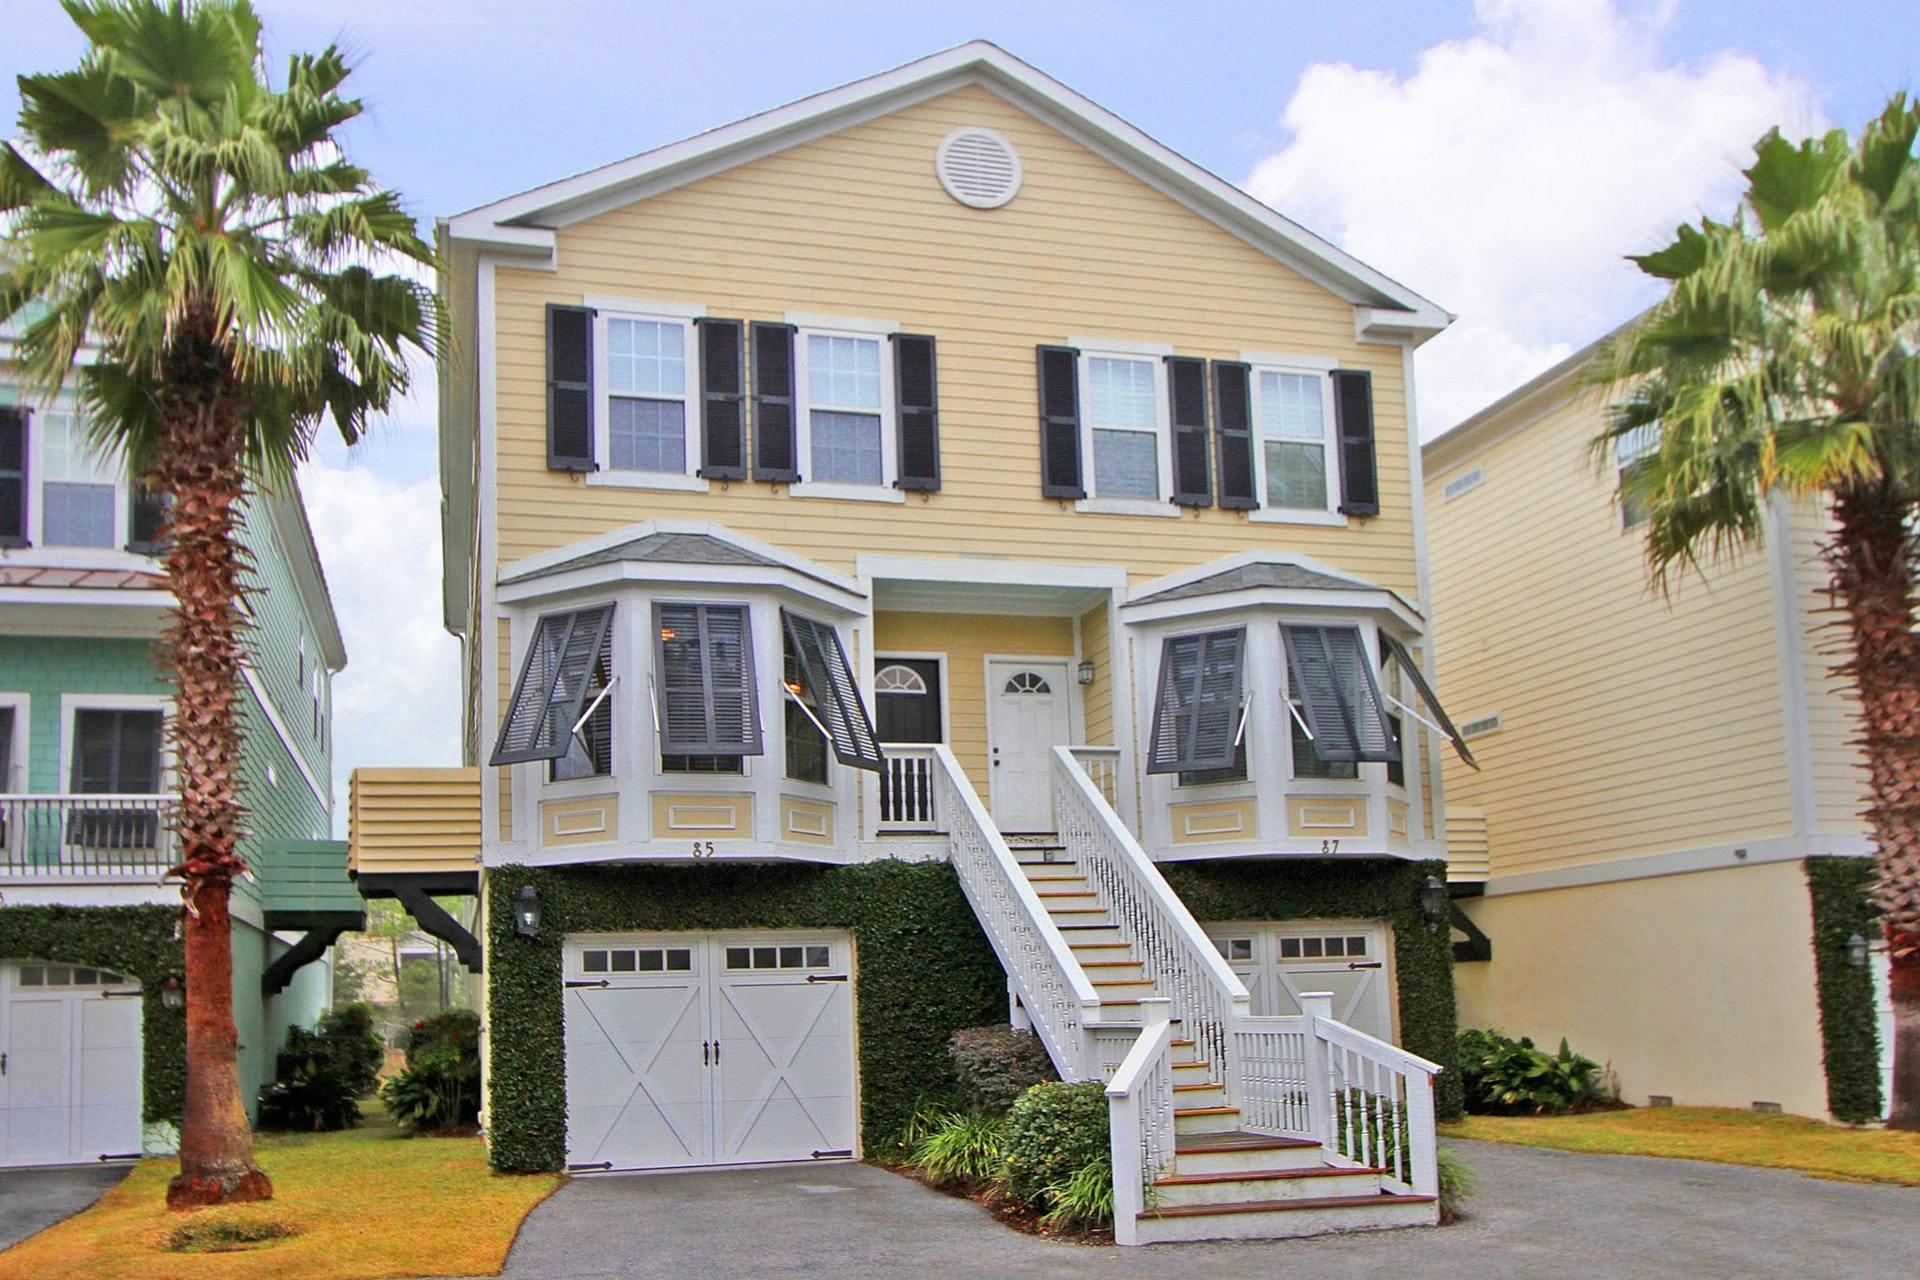 Waters Edge Homes For Sale - 85 2nd, Folly Beach, SC - 17